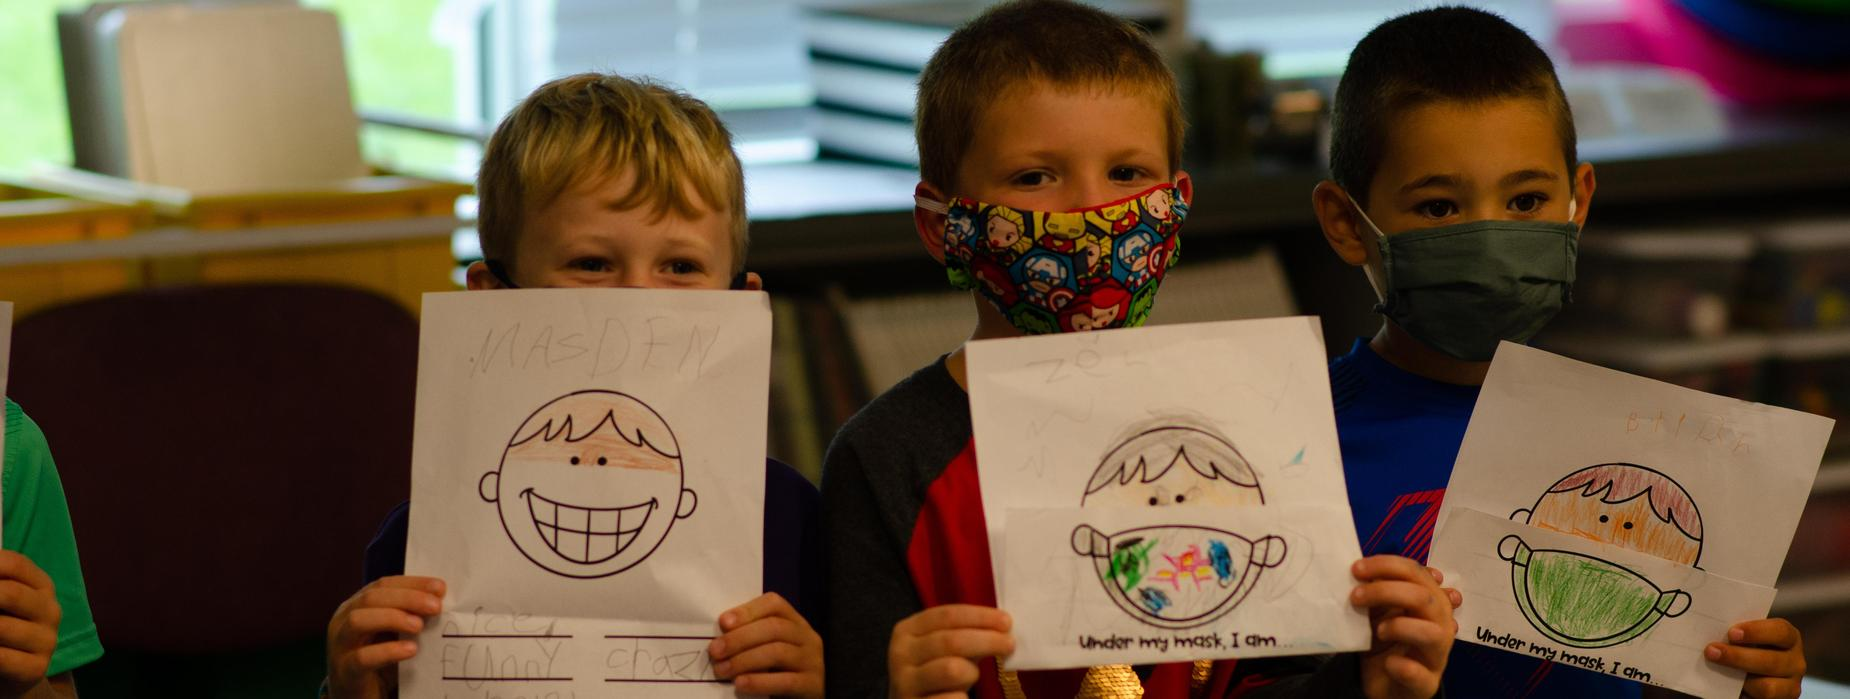 Students holding up their drawings of why they wear masks